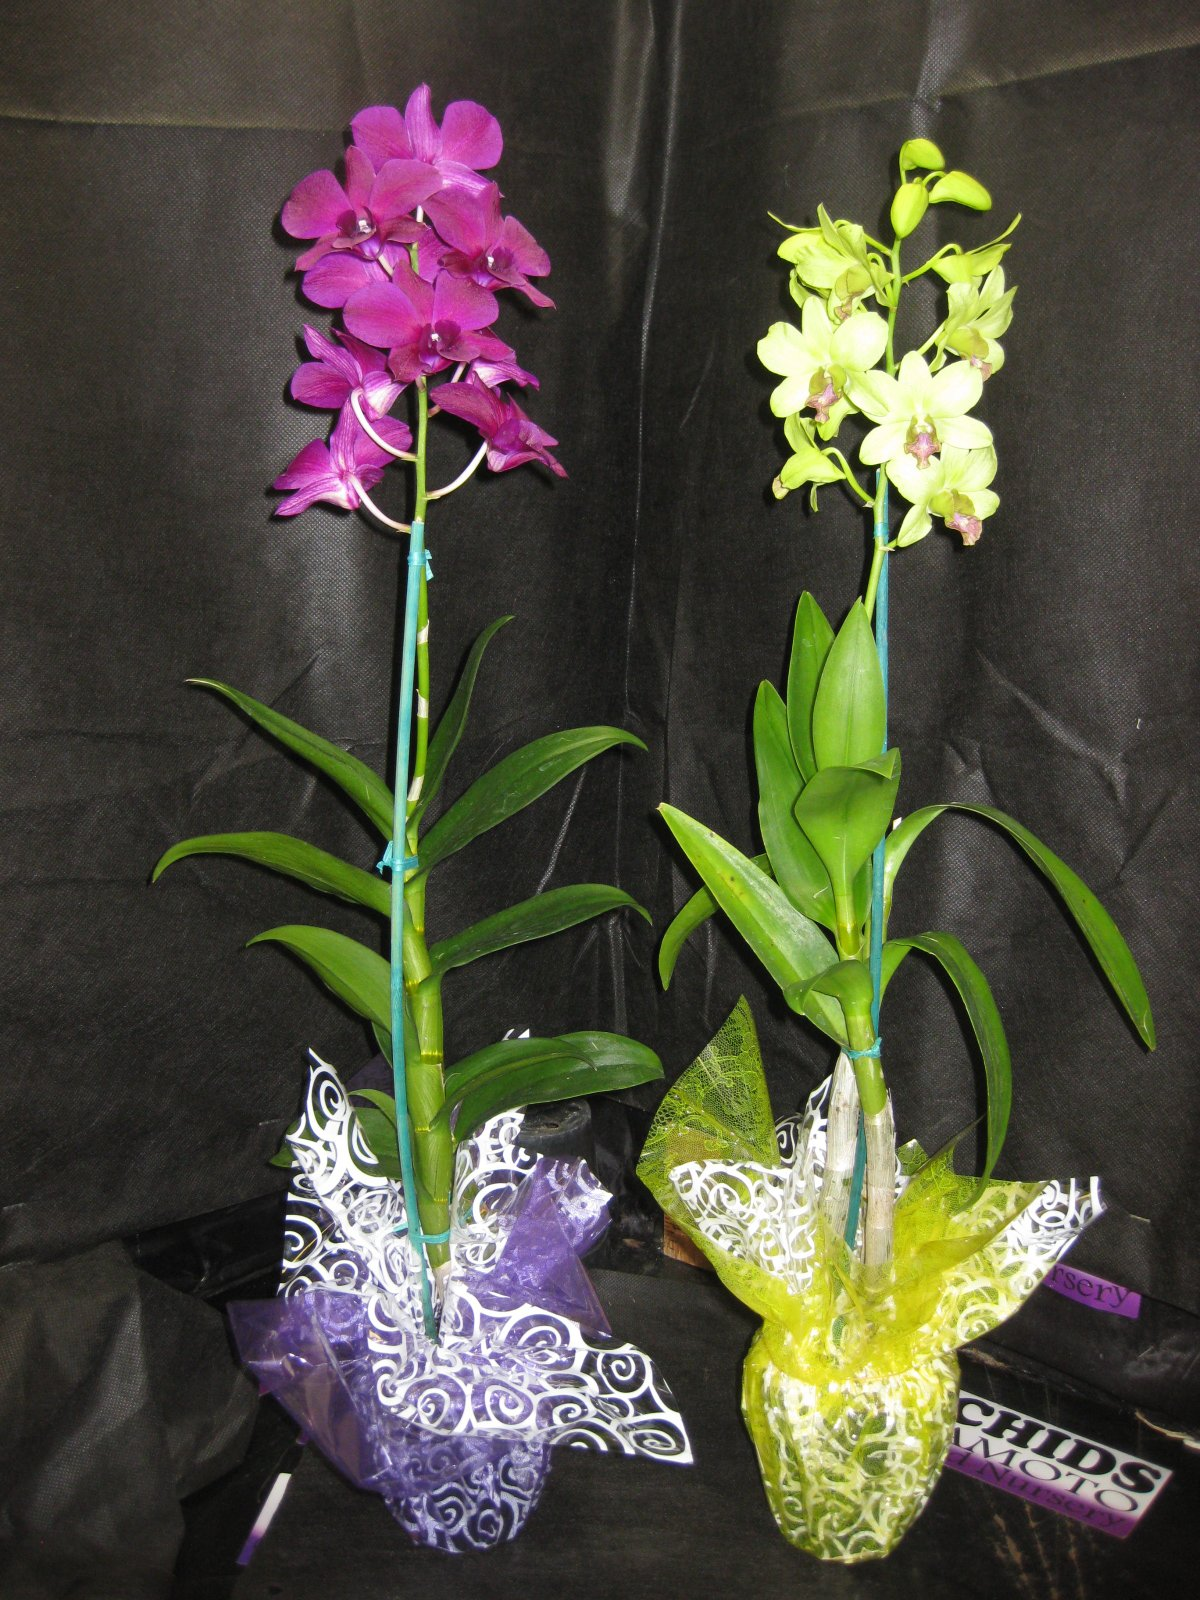 2 Blooming/Budded Flowering Dendrobium Orchid Plant-A GIFT OF ALOHA! BEAUTIFUL- Perfect Gift for any occasion by Kawamoto Orchid Nursery